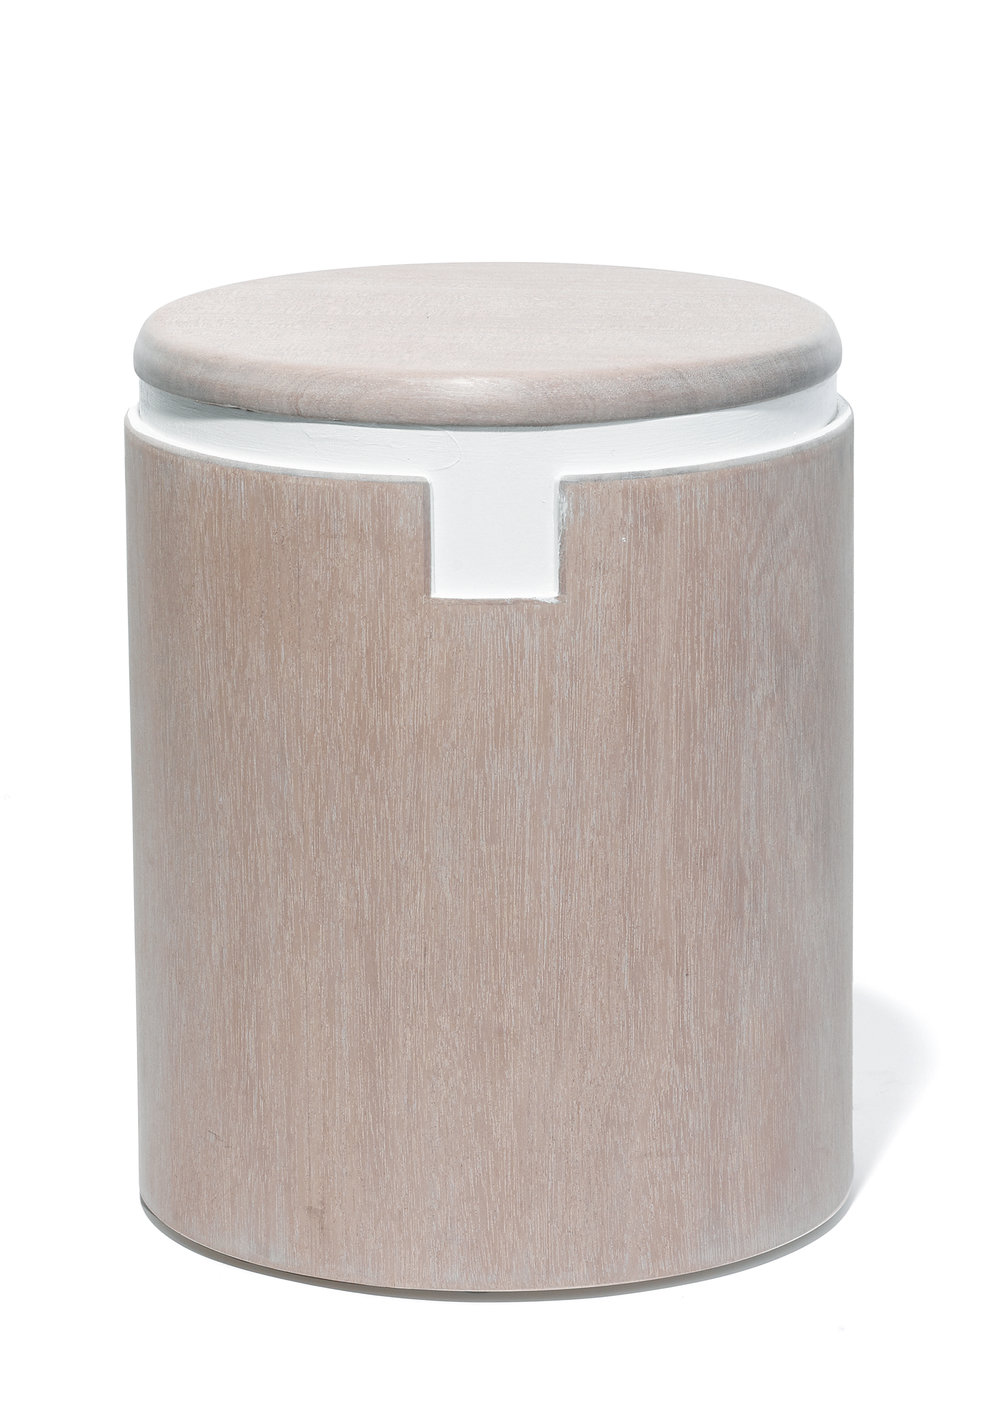 Bishop Stool - Rose Michael Yates Michael Yates USA (Austin, TX / Brooklun, NY) 2016 Wood H 14.75 in, Dia 11.25 in 10 lbs. LIST PRICE: Cube $450 DESIGNER DISCOUNT PRICE: $ LEAD TIME: 3-5 Days QUANTITY IN STOCK: 1 ONLINE PLATFORMS: kM Web, Artsy,